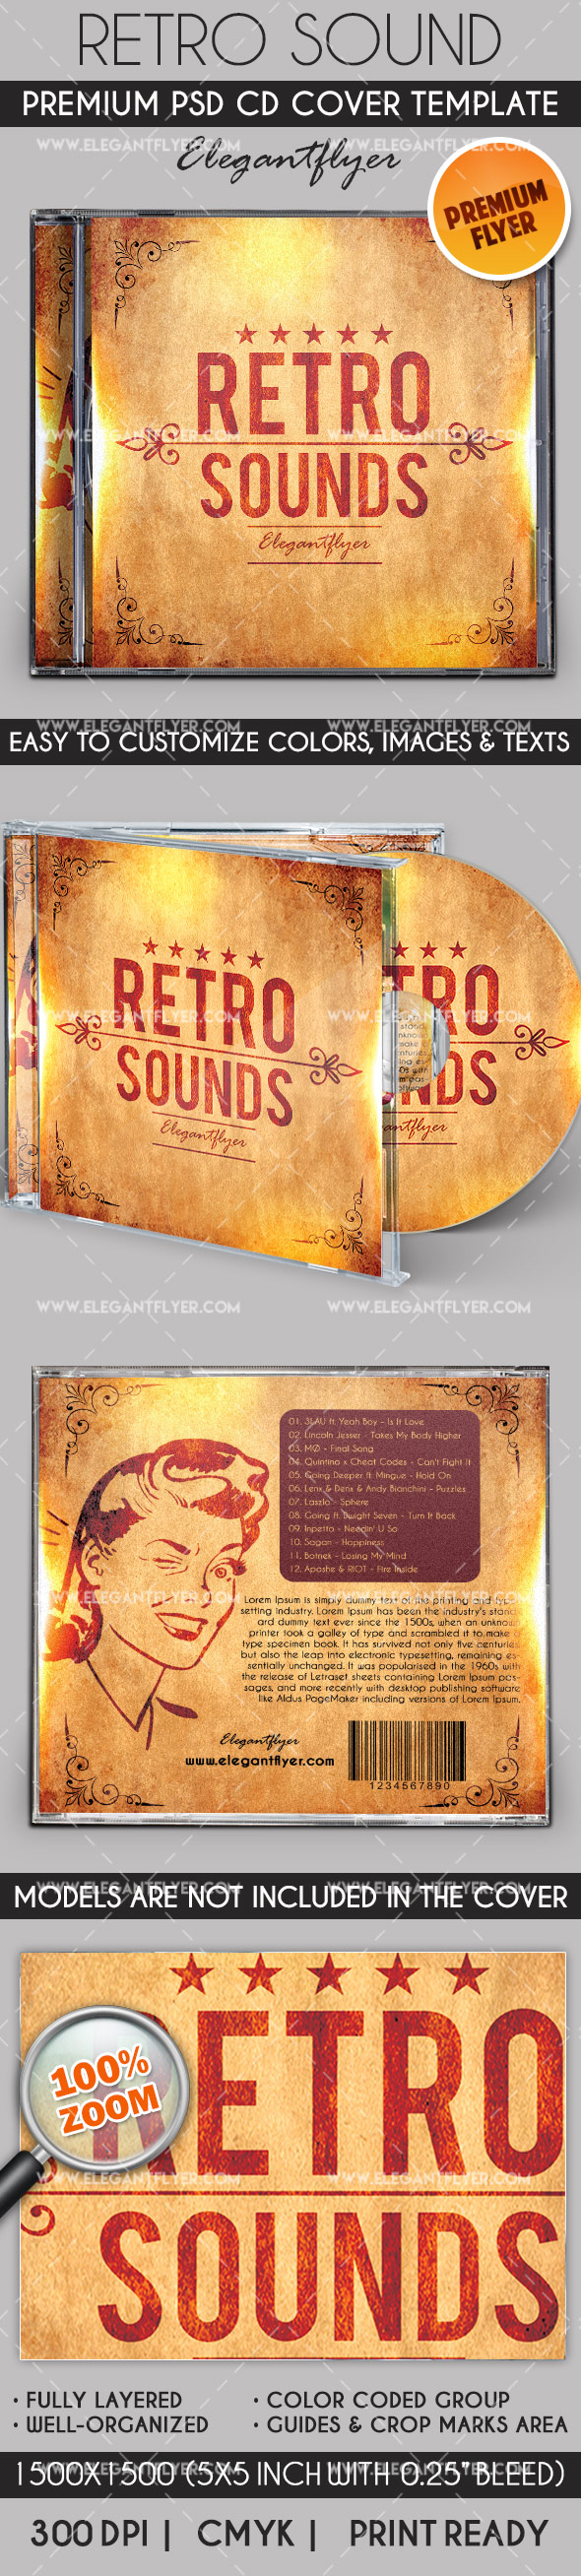 Retro Sounds – Premium CD Cover PSD Template